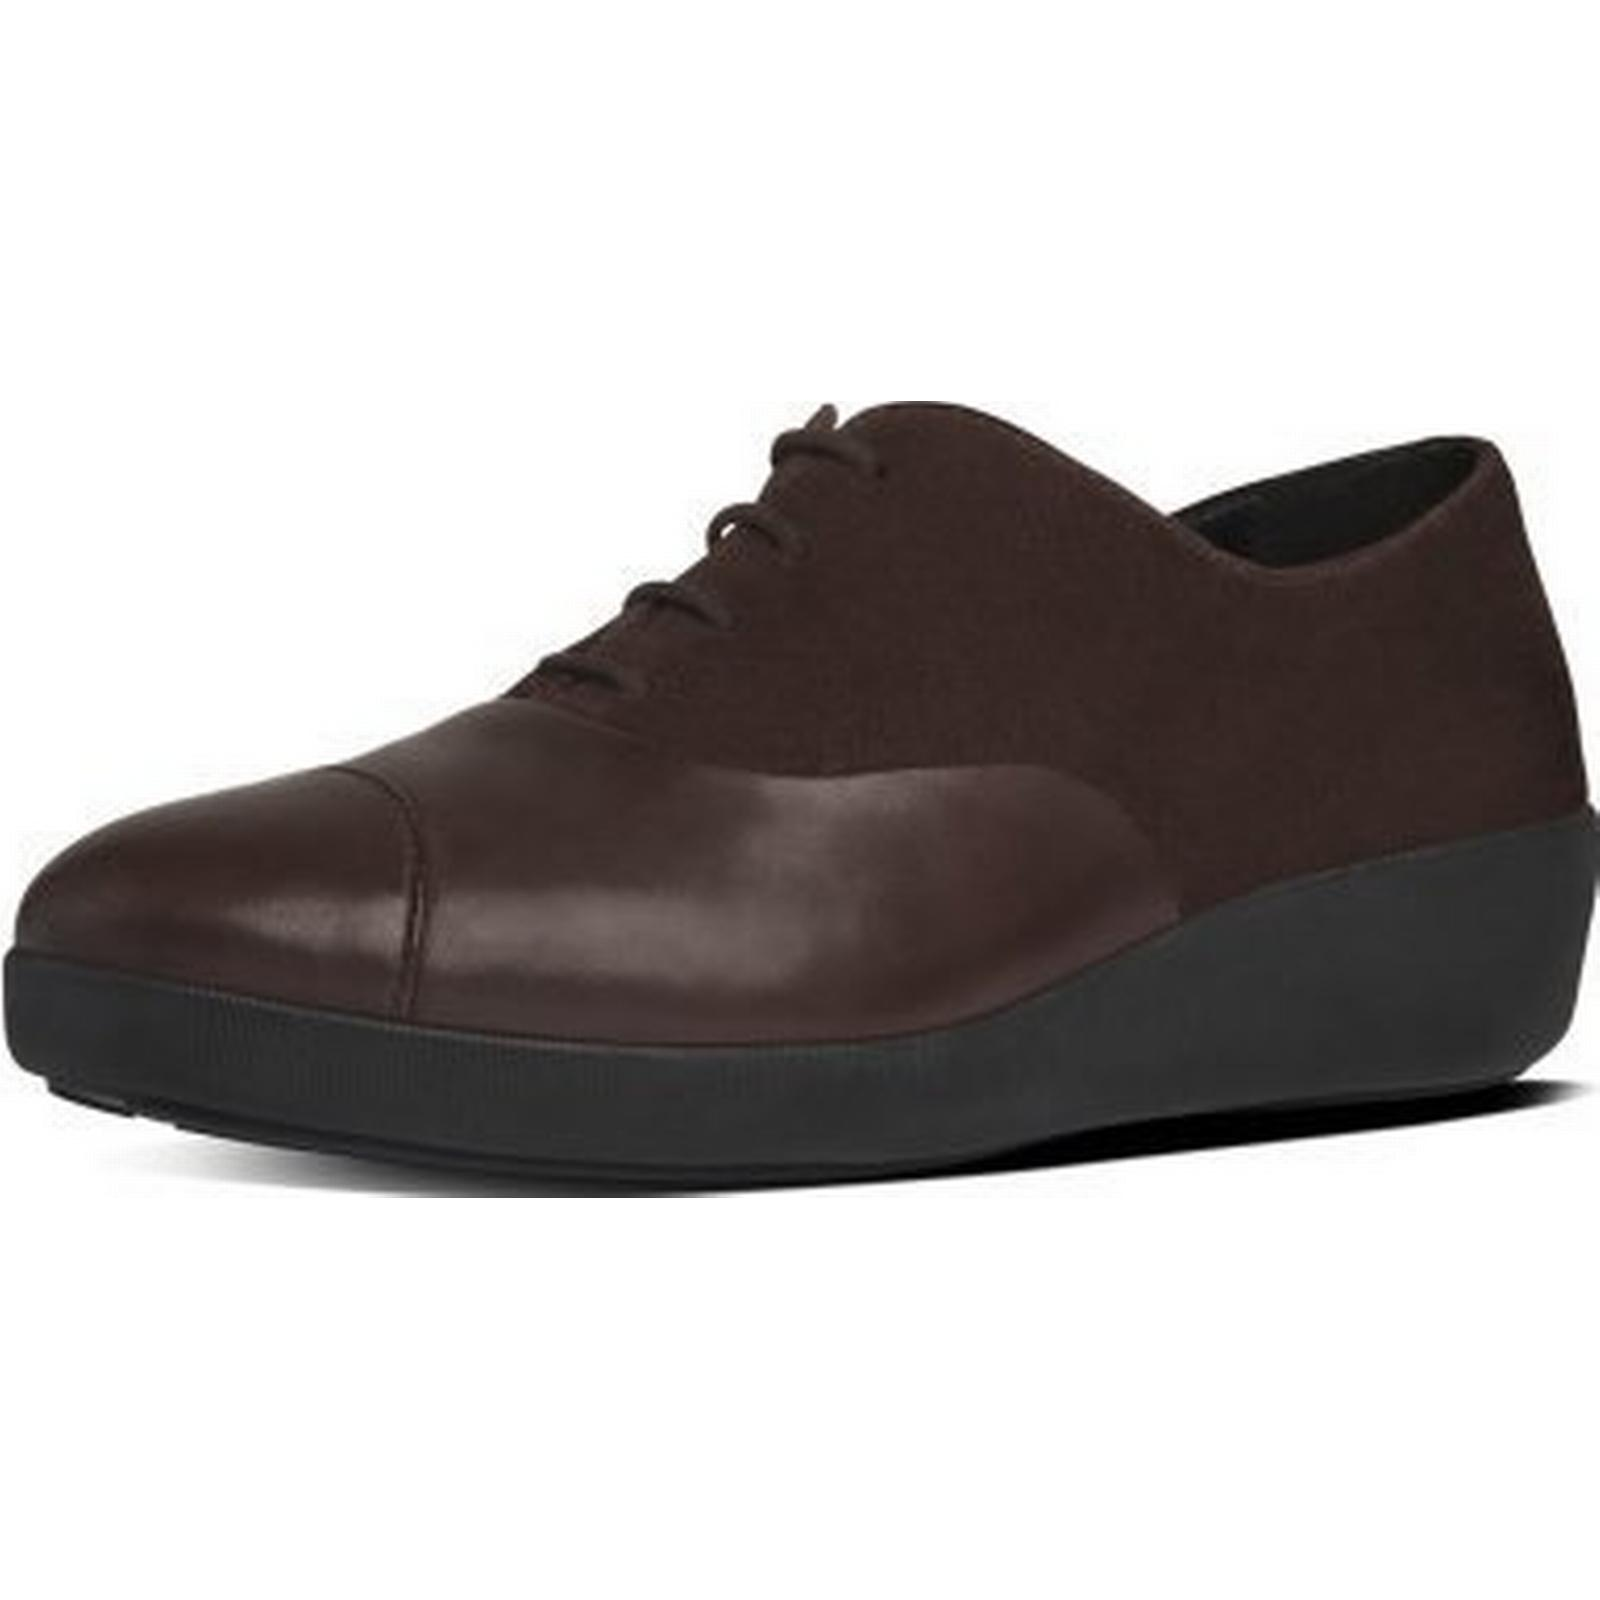 fitflop f-pop oxford oxford oxford fitflop mesdames chaussures taille: 6,5, couleur: noir. 1e3a0e